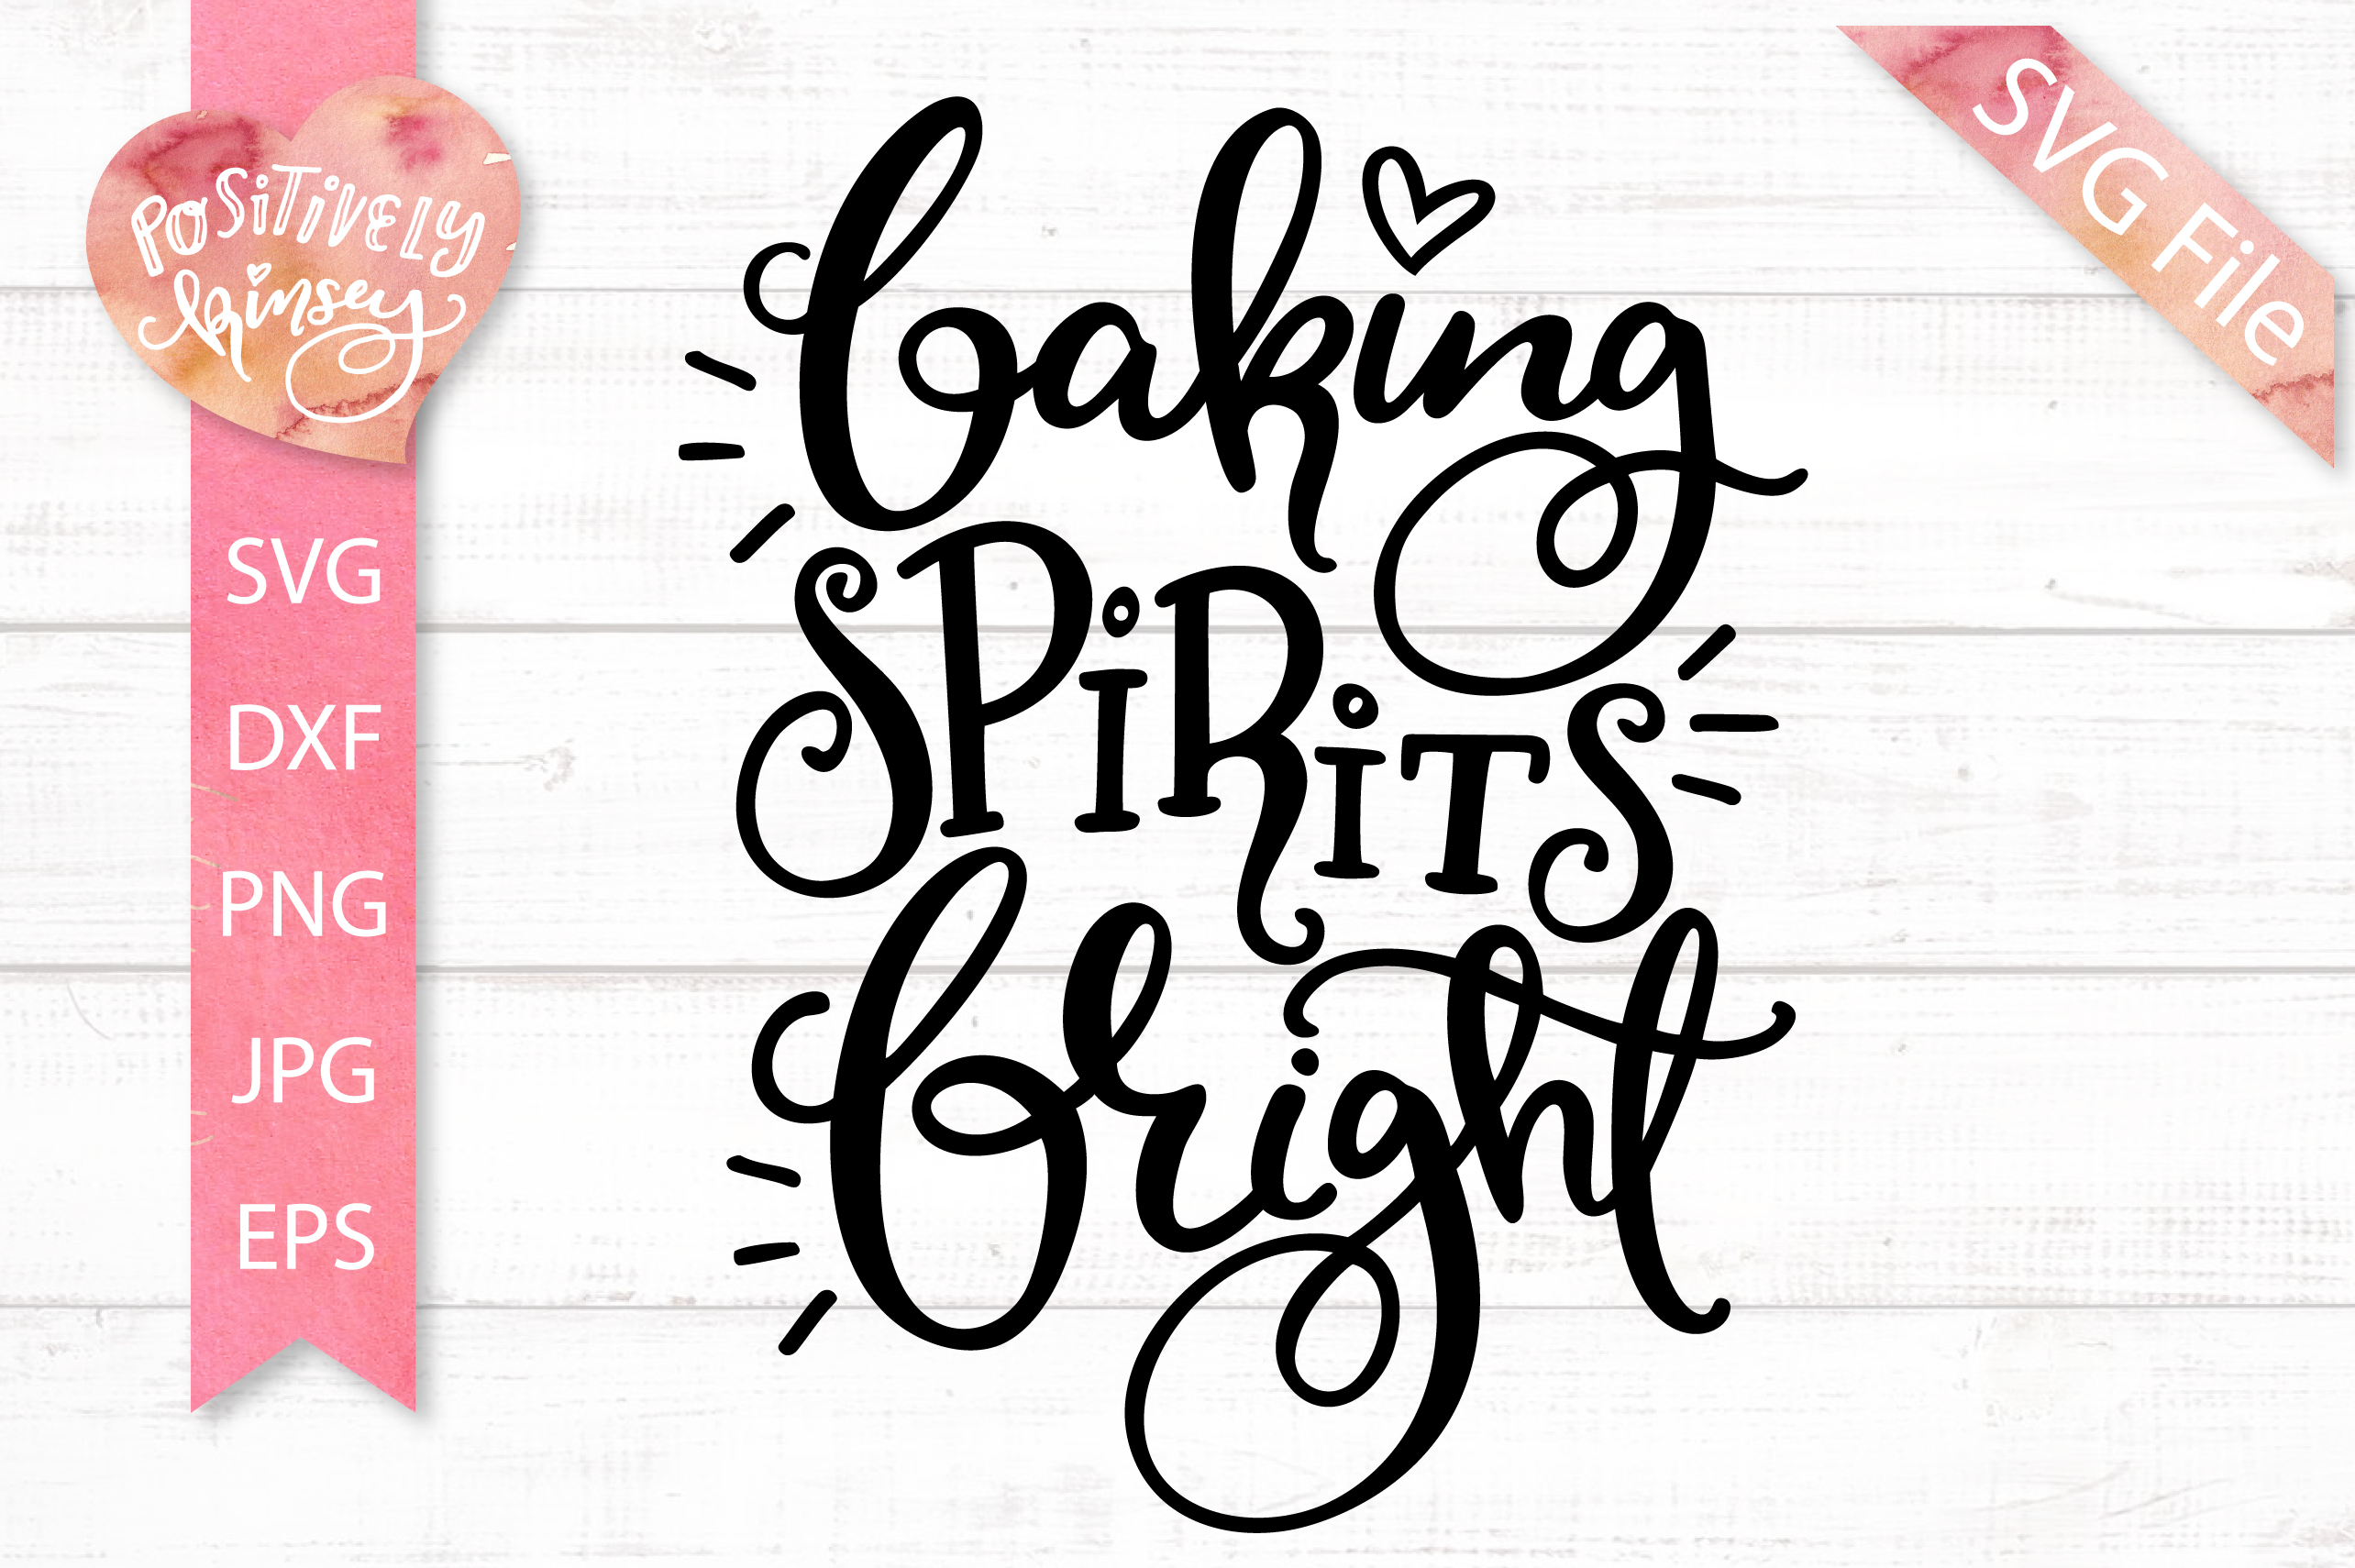 Christmas Baking SVG Bundle! 7 Cute Holiday Quote Designs example image 8